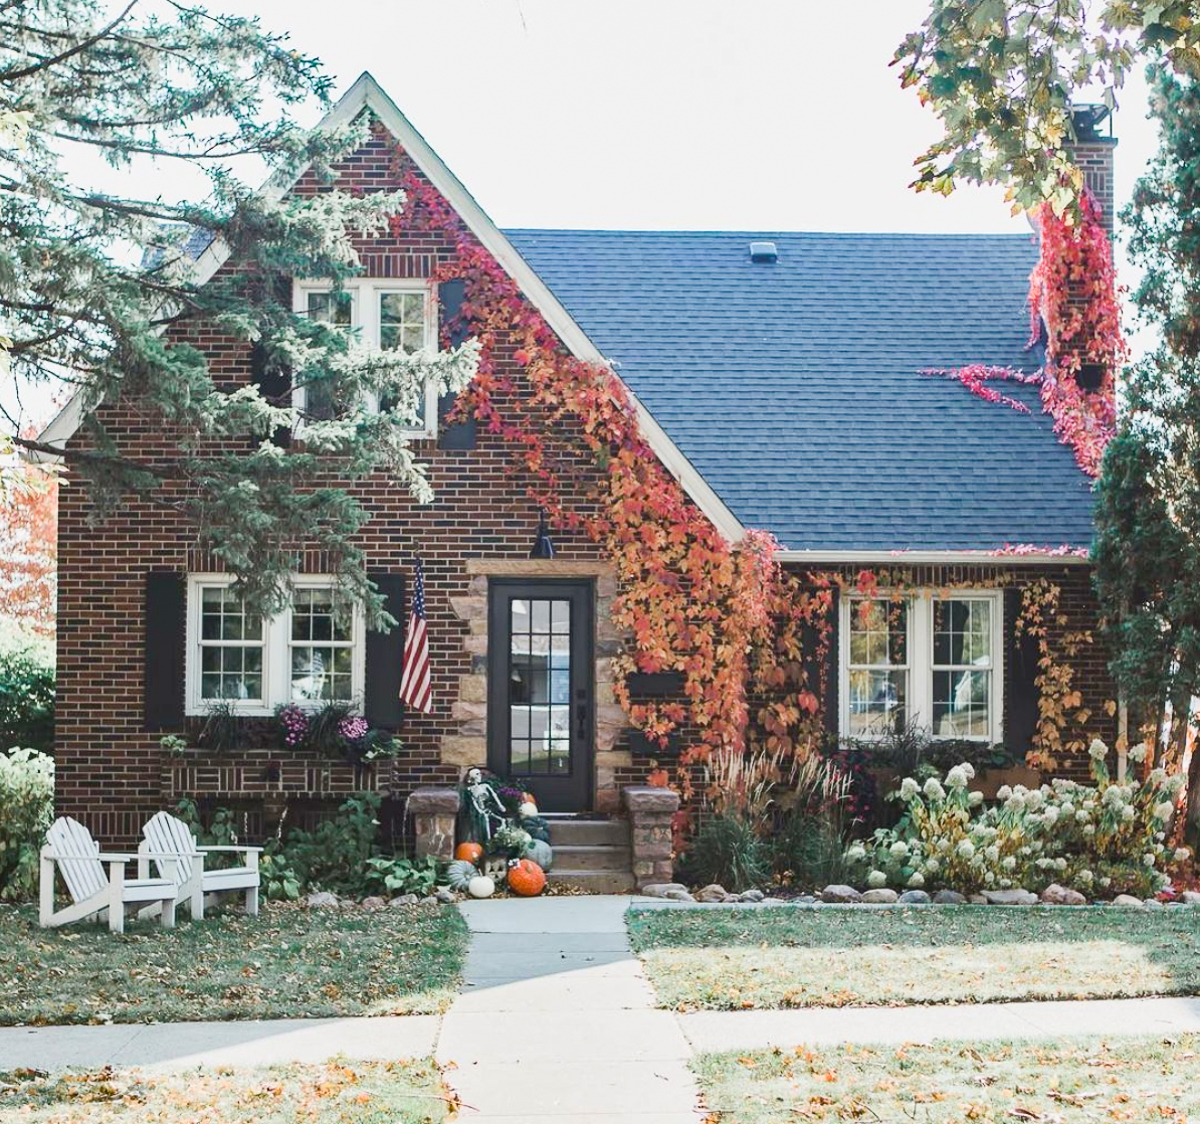 Don't miss this Eclectic Home Tour of Angela Fahl - this 1931 brick Tudor is a historic house lovers dream kellyelko.com